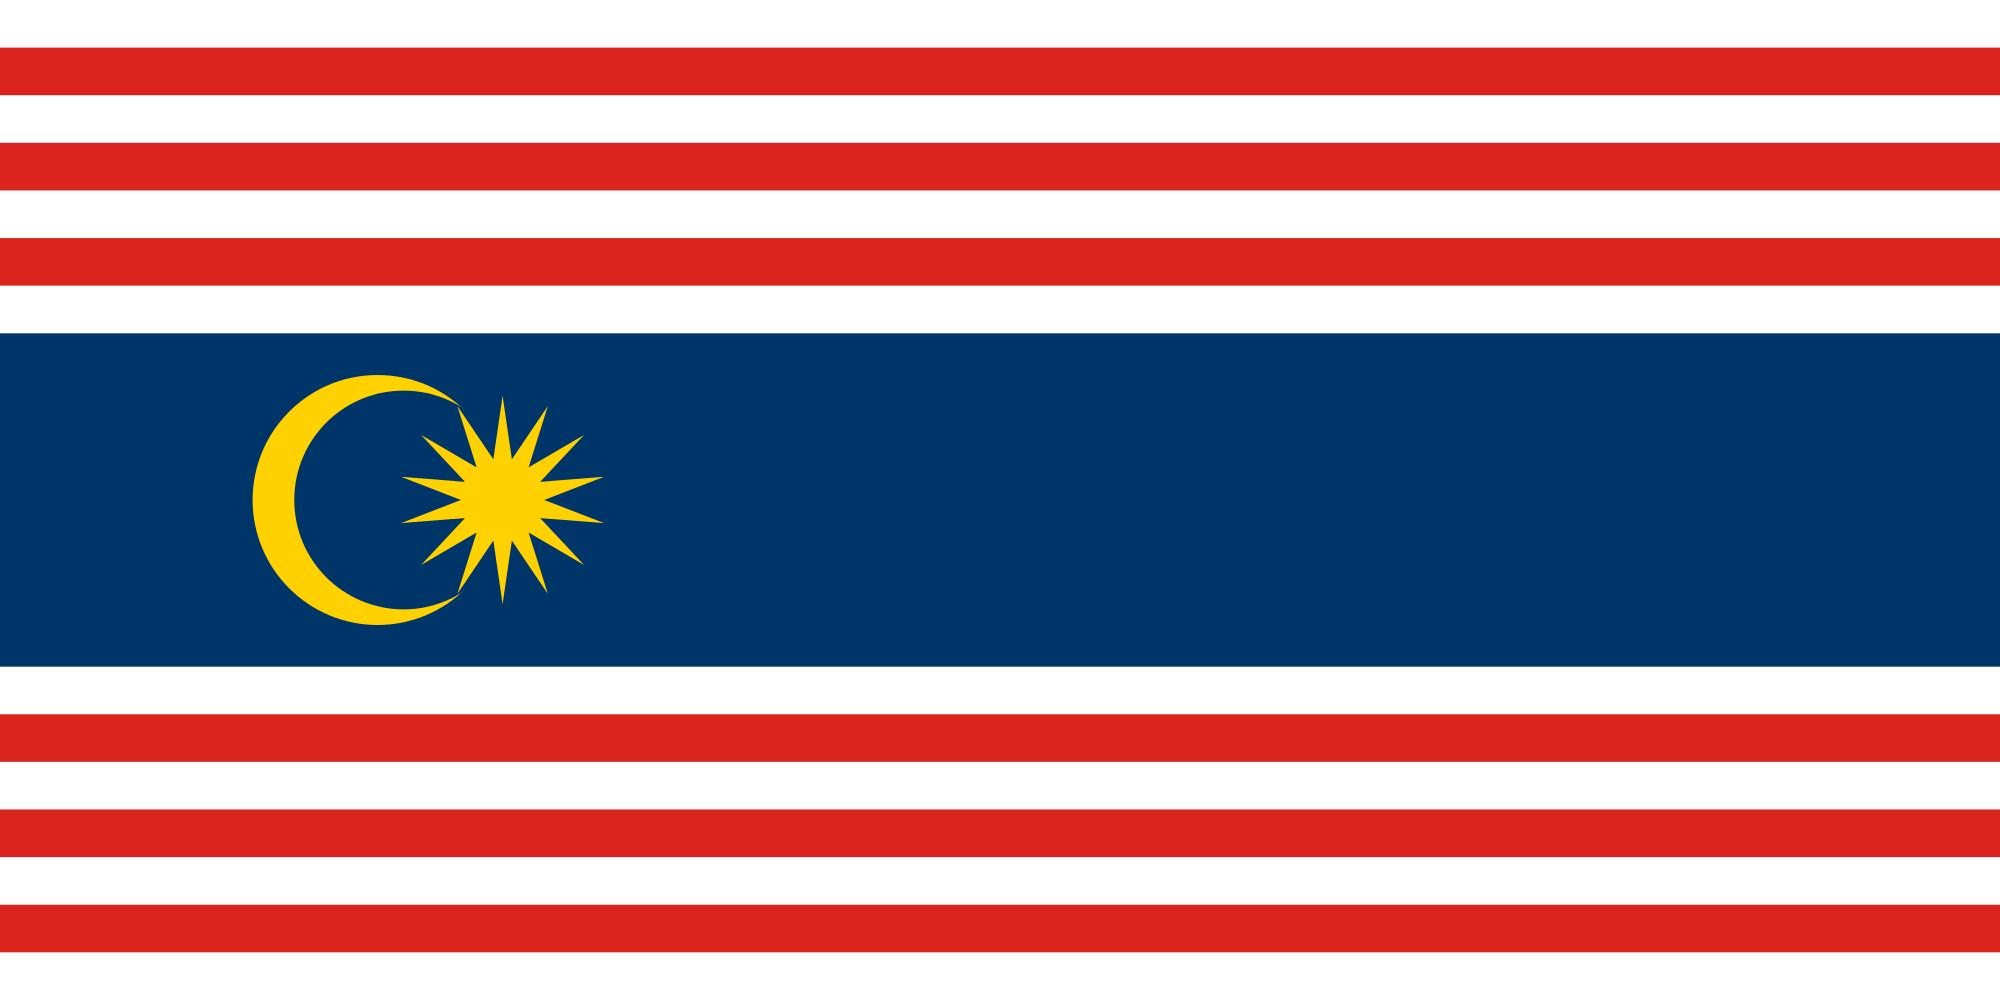 Malaysia Flag Wallpapers for Android   APK Download 2000x1000